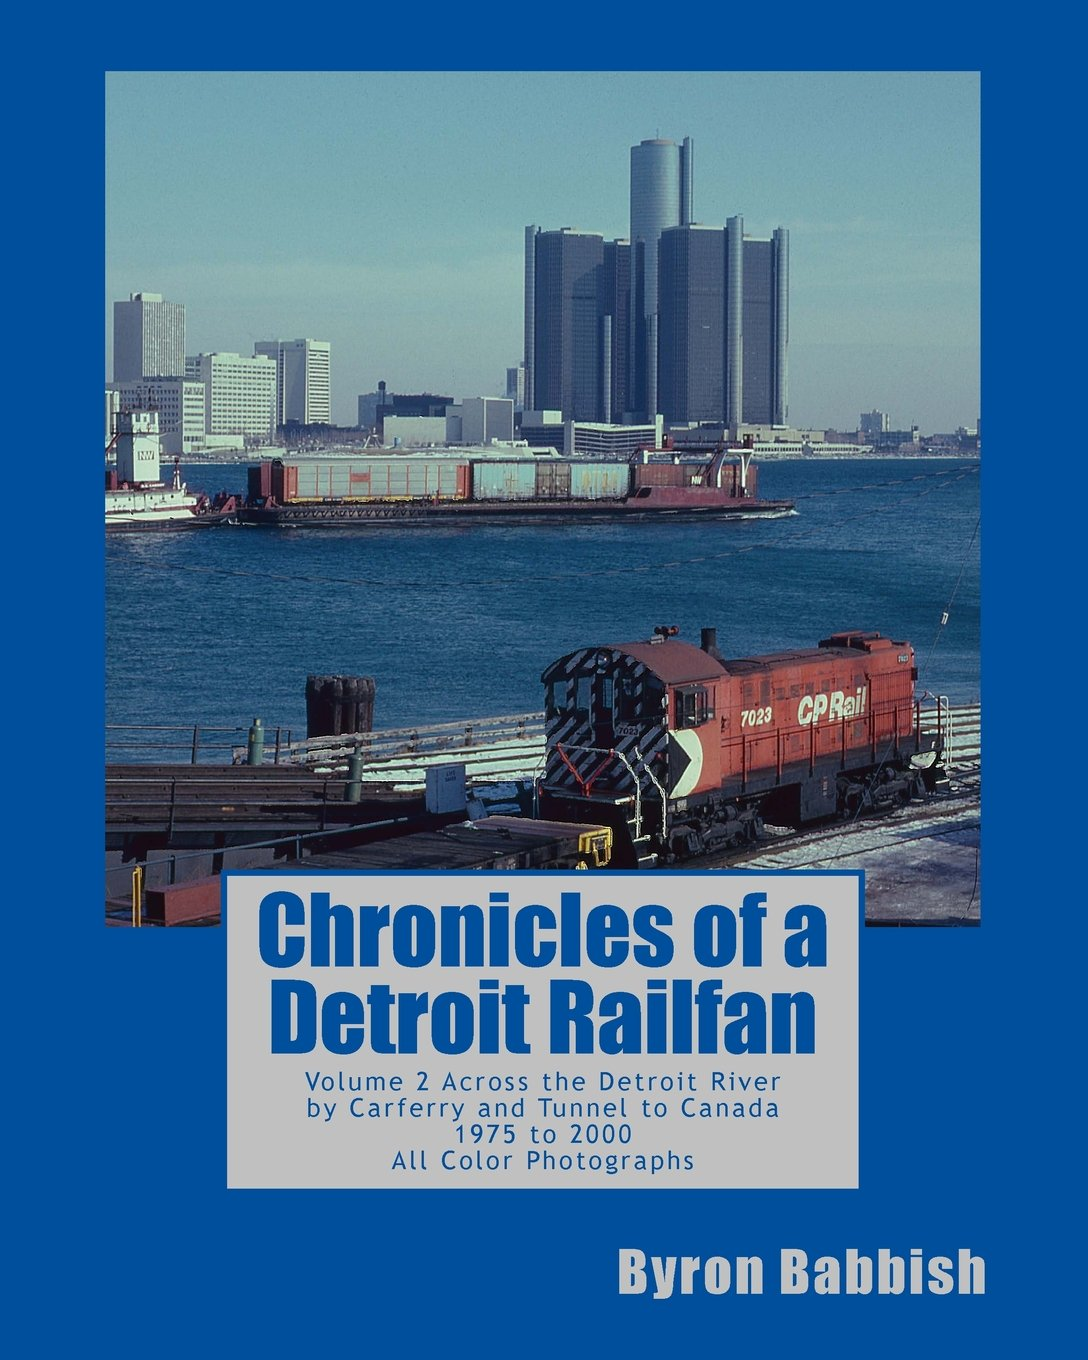 Chronicles of a Detroit Railfan: Volume 2, Across the Detroit River by Carferry and Tunnel to Canada, 1975 to 2000, All Color Photographs PDF